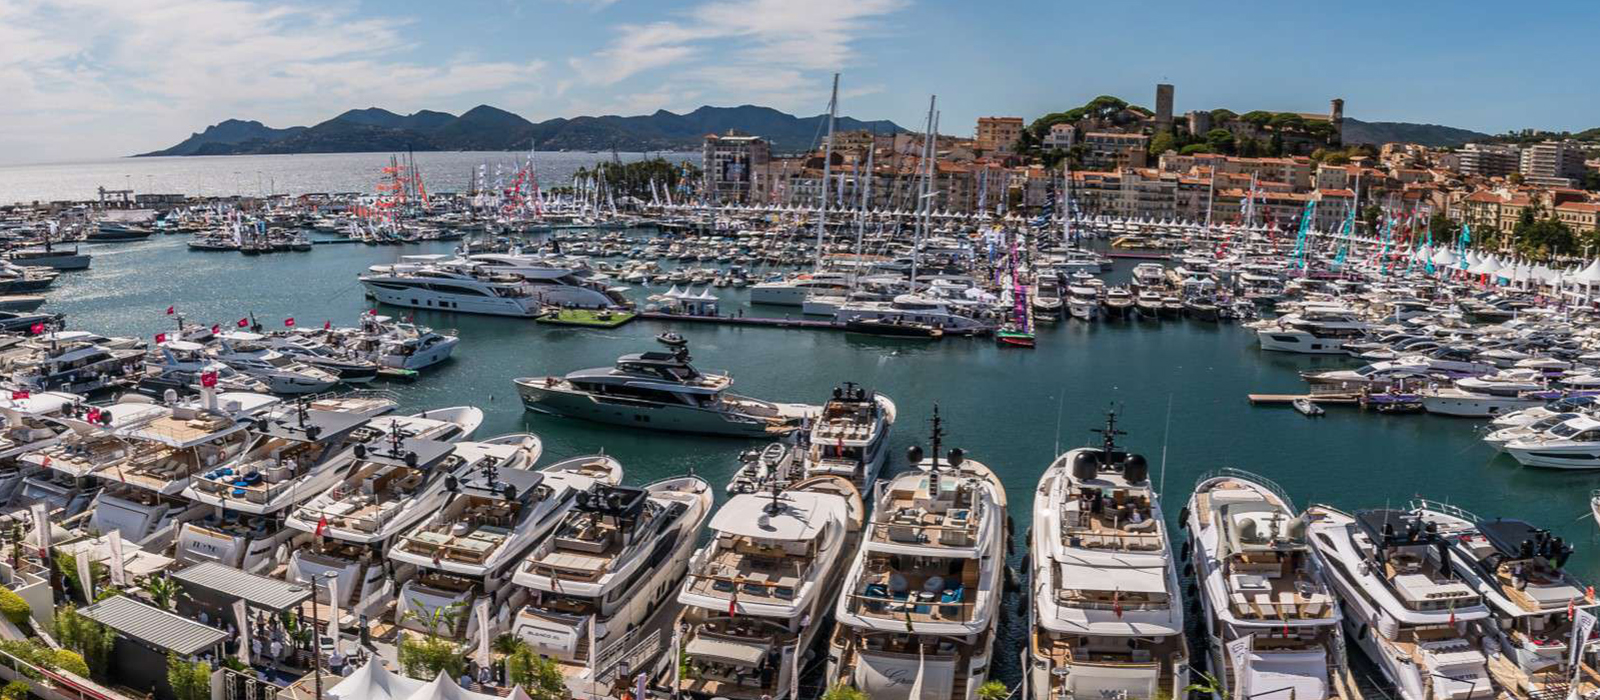 Cannes-Yachting-Festival-Saxon-Insurance-Brokers-Luxury-Yacht-Insurance.jpg